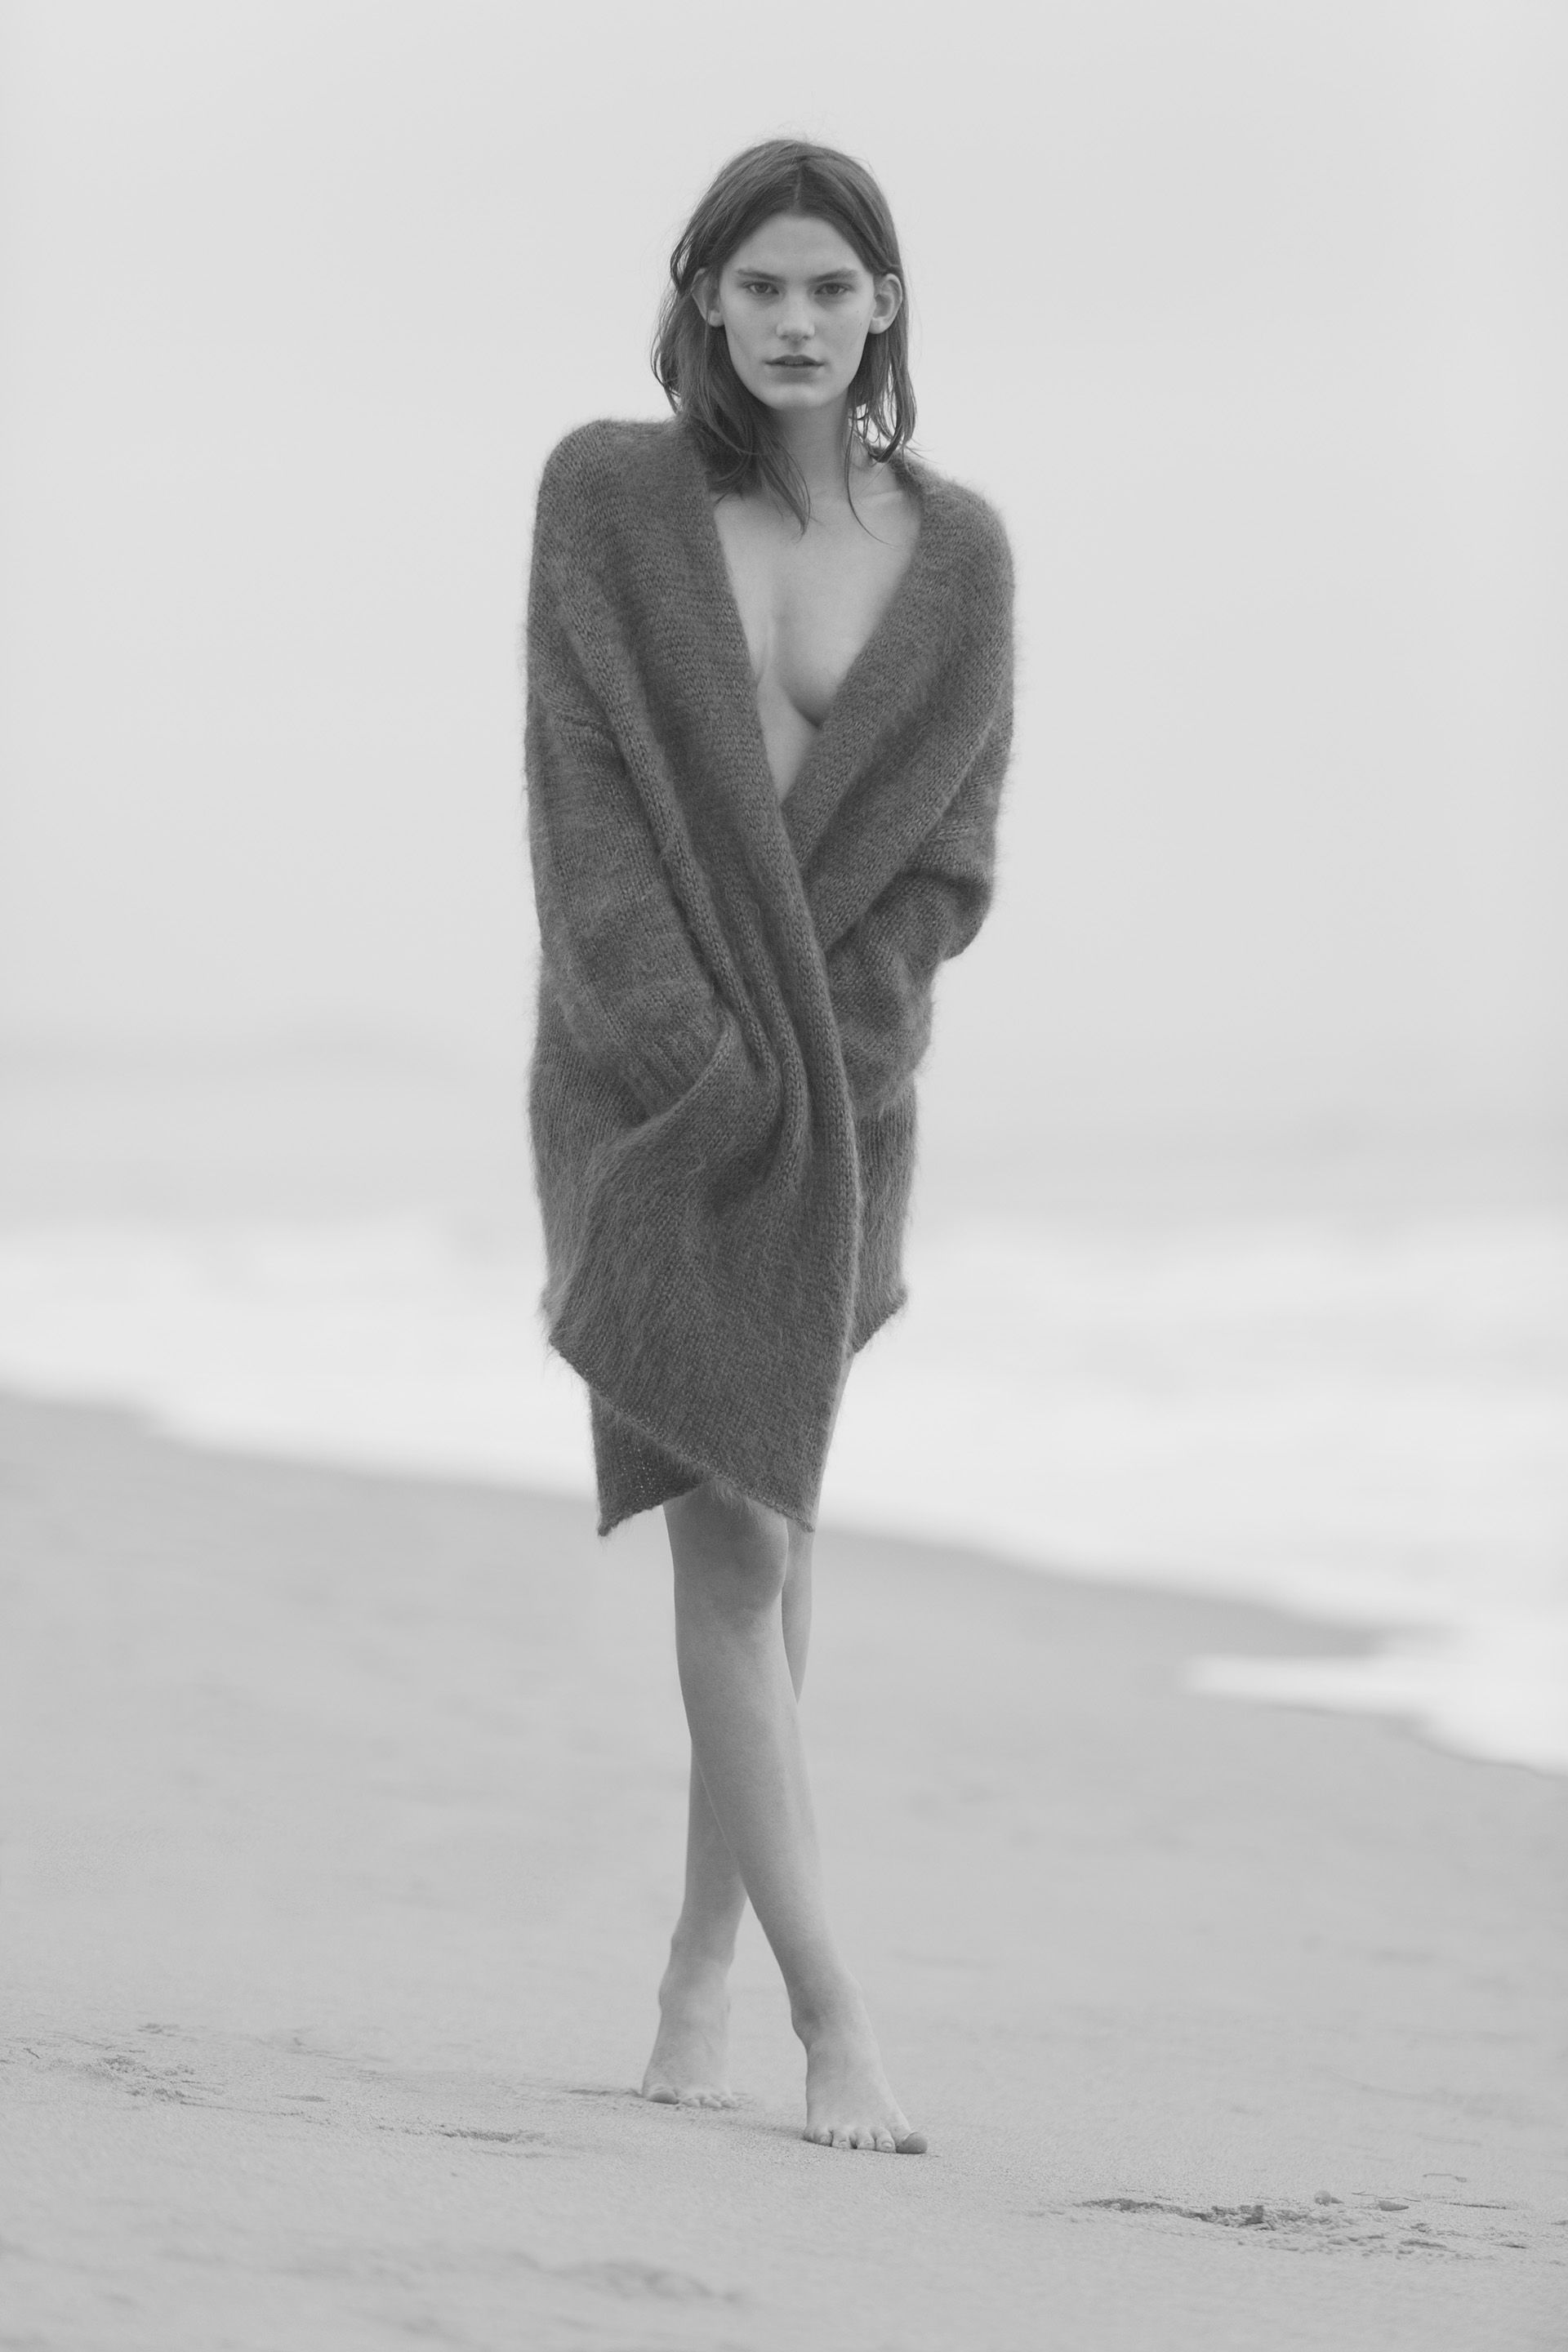 jock sturges photograph 17 Best images about jock sturges on Pinterest | Girl on beach, Lets go and  Jackets